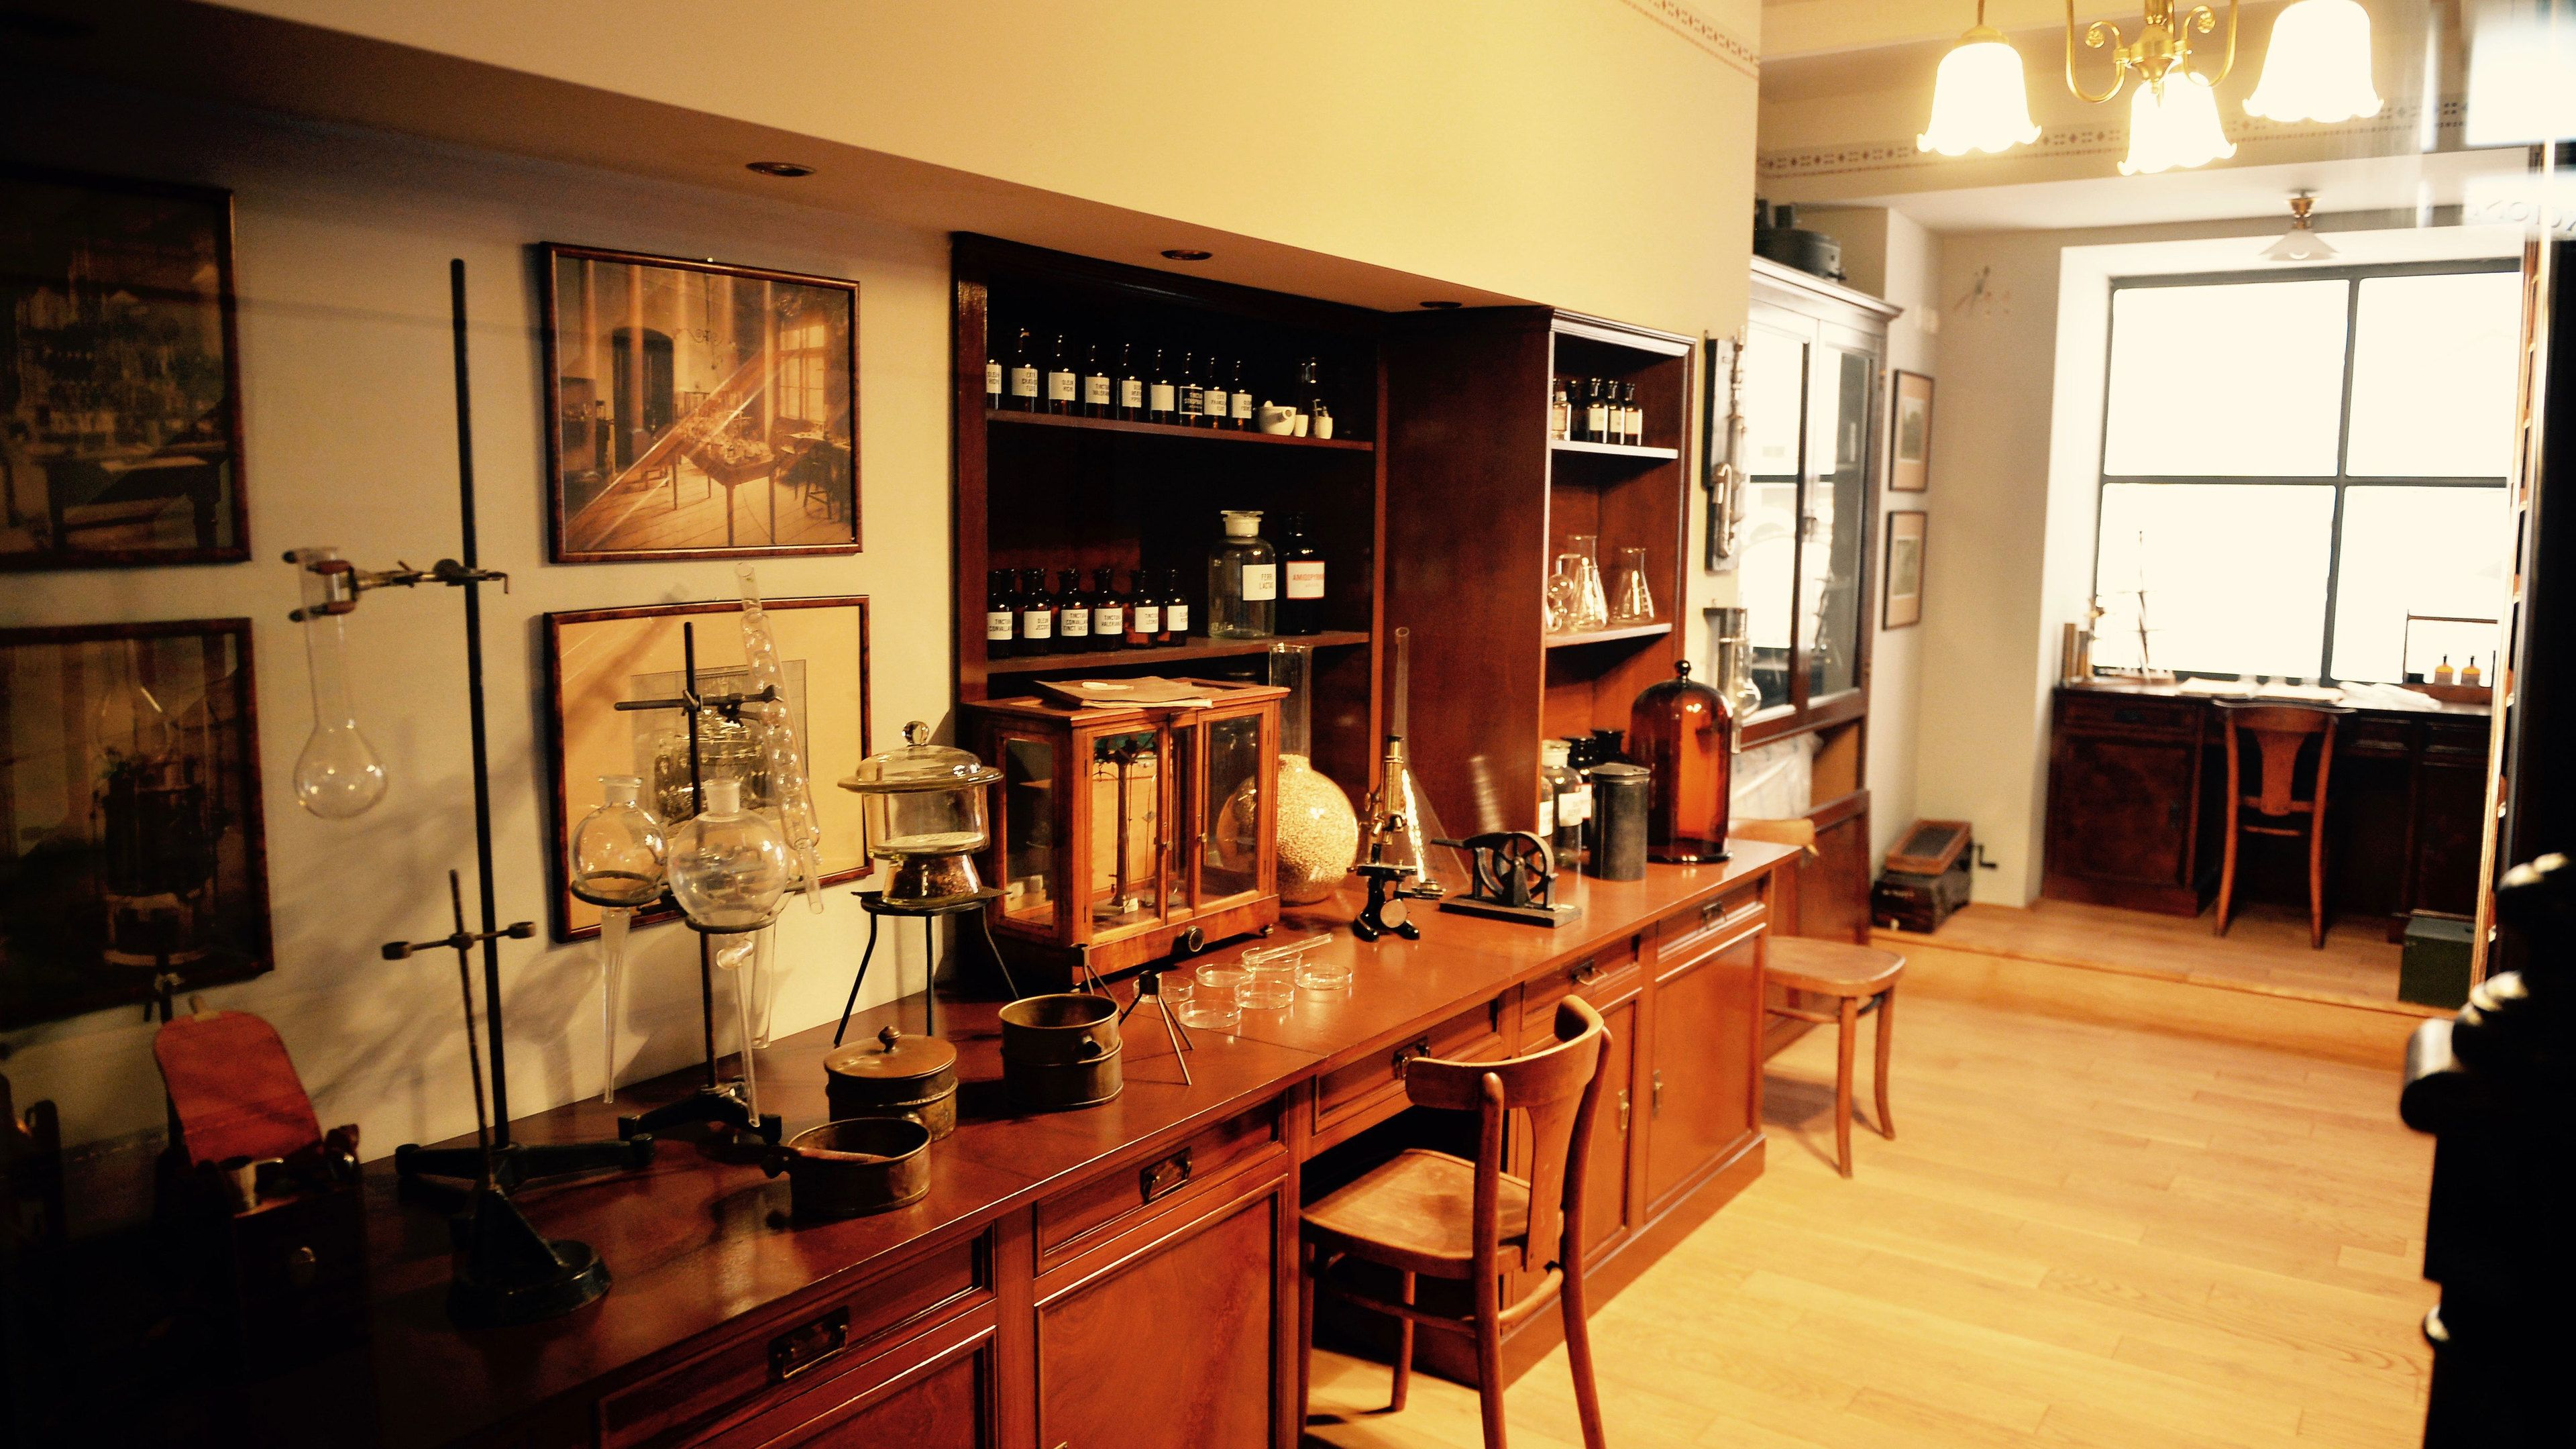 Replica of an old-fashioned science lab in Prague